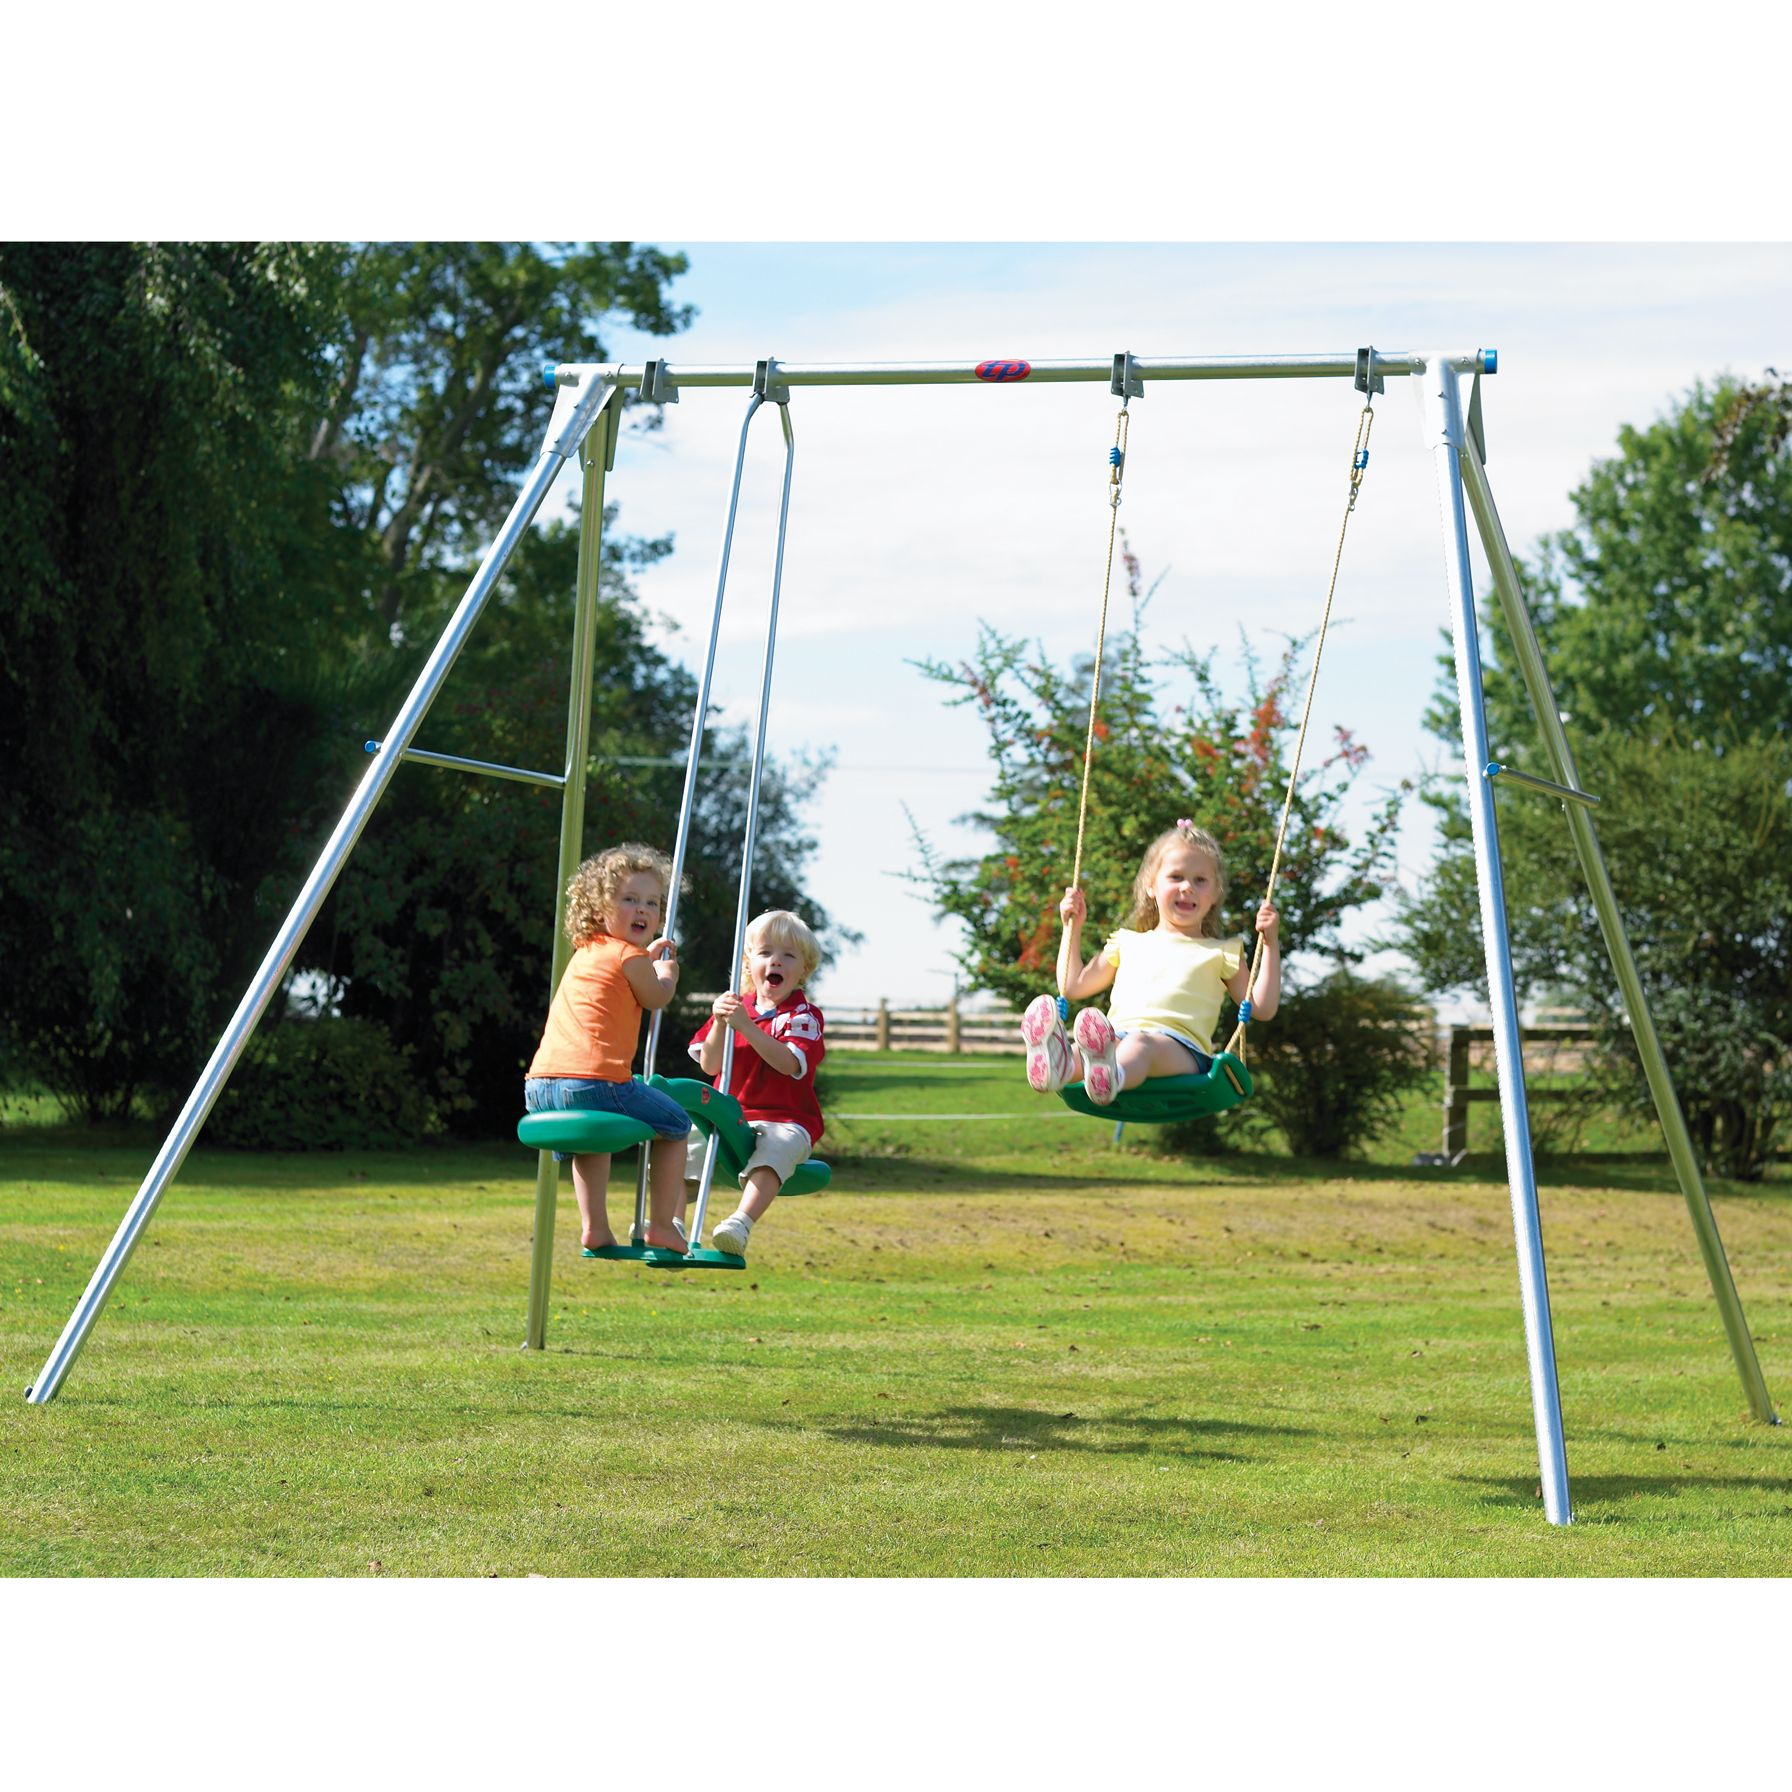 TP Double Giant Swing Set